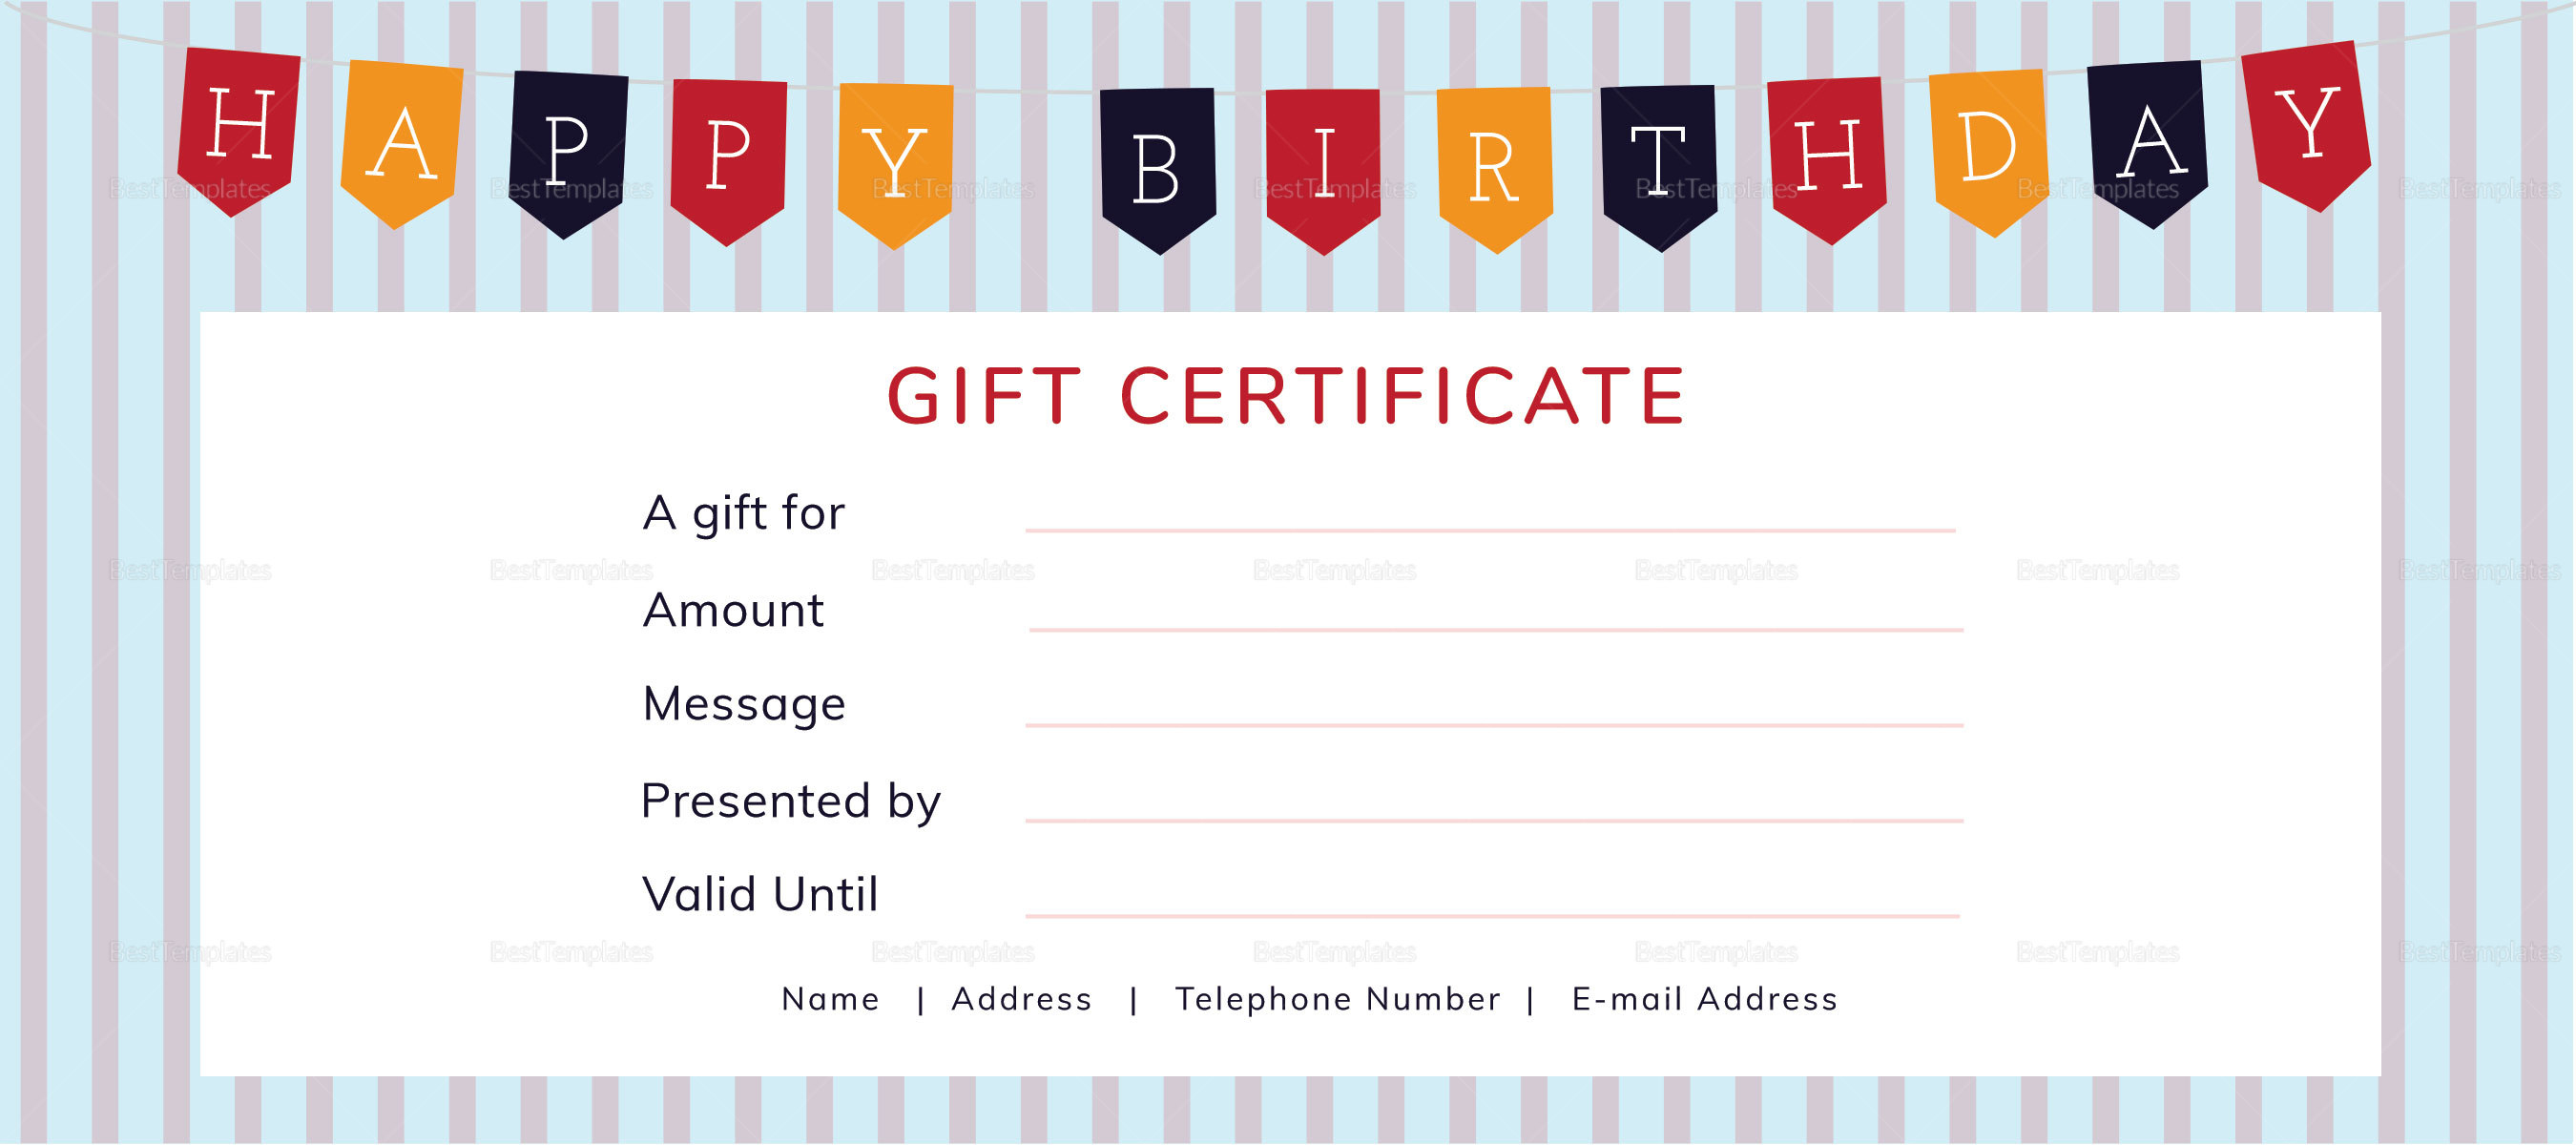 Happy Birthday Gift Certificate Template